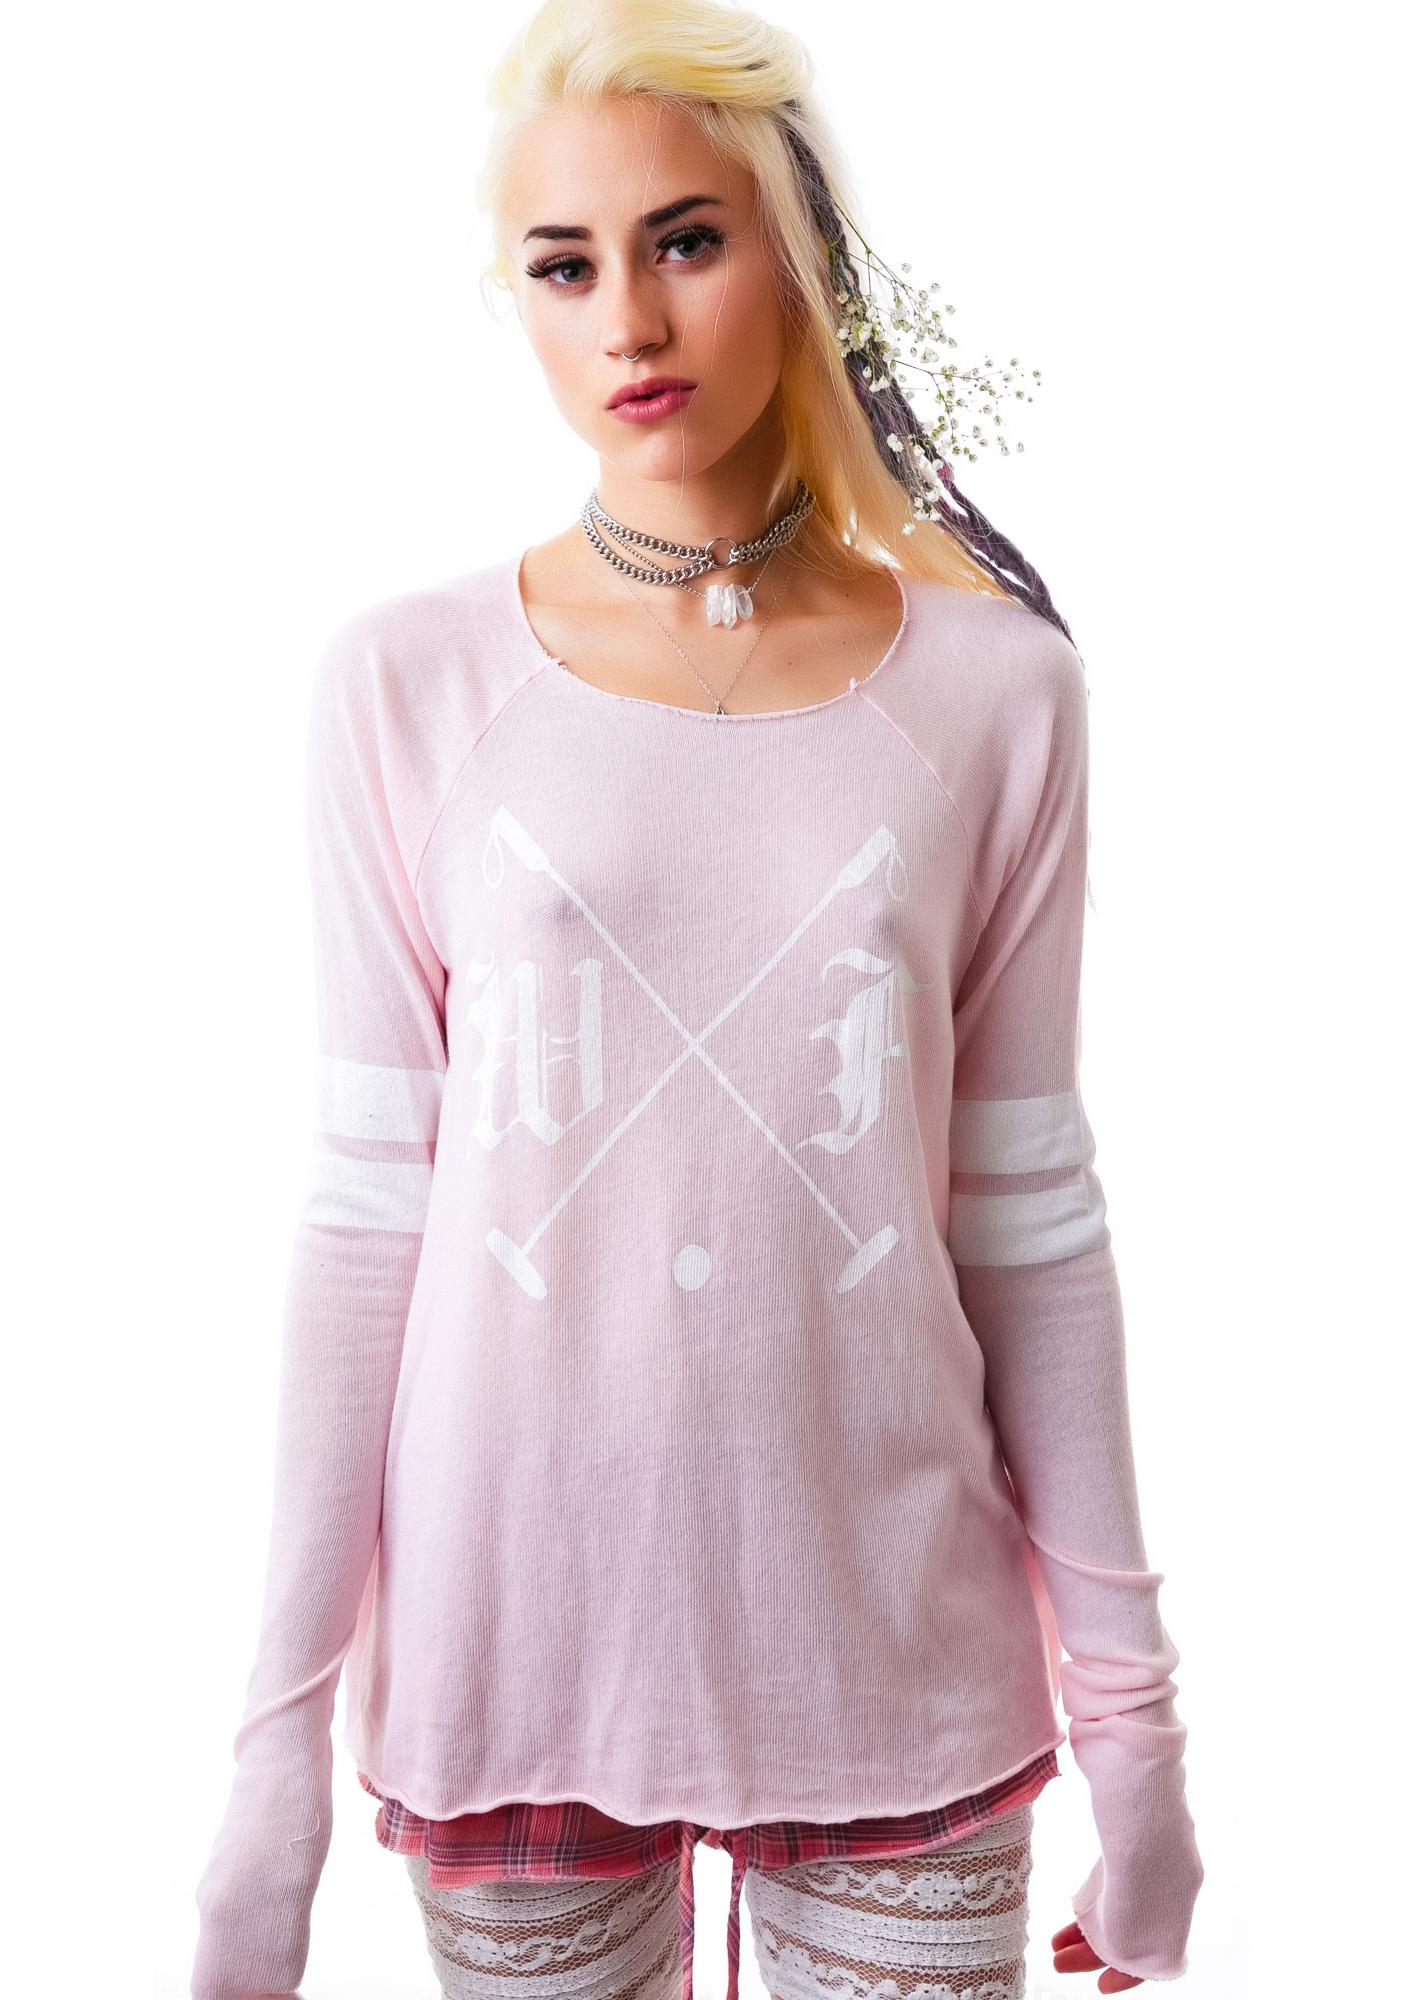 Wildfox Couture Polo Club Ecentricity Cozy Raglan